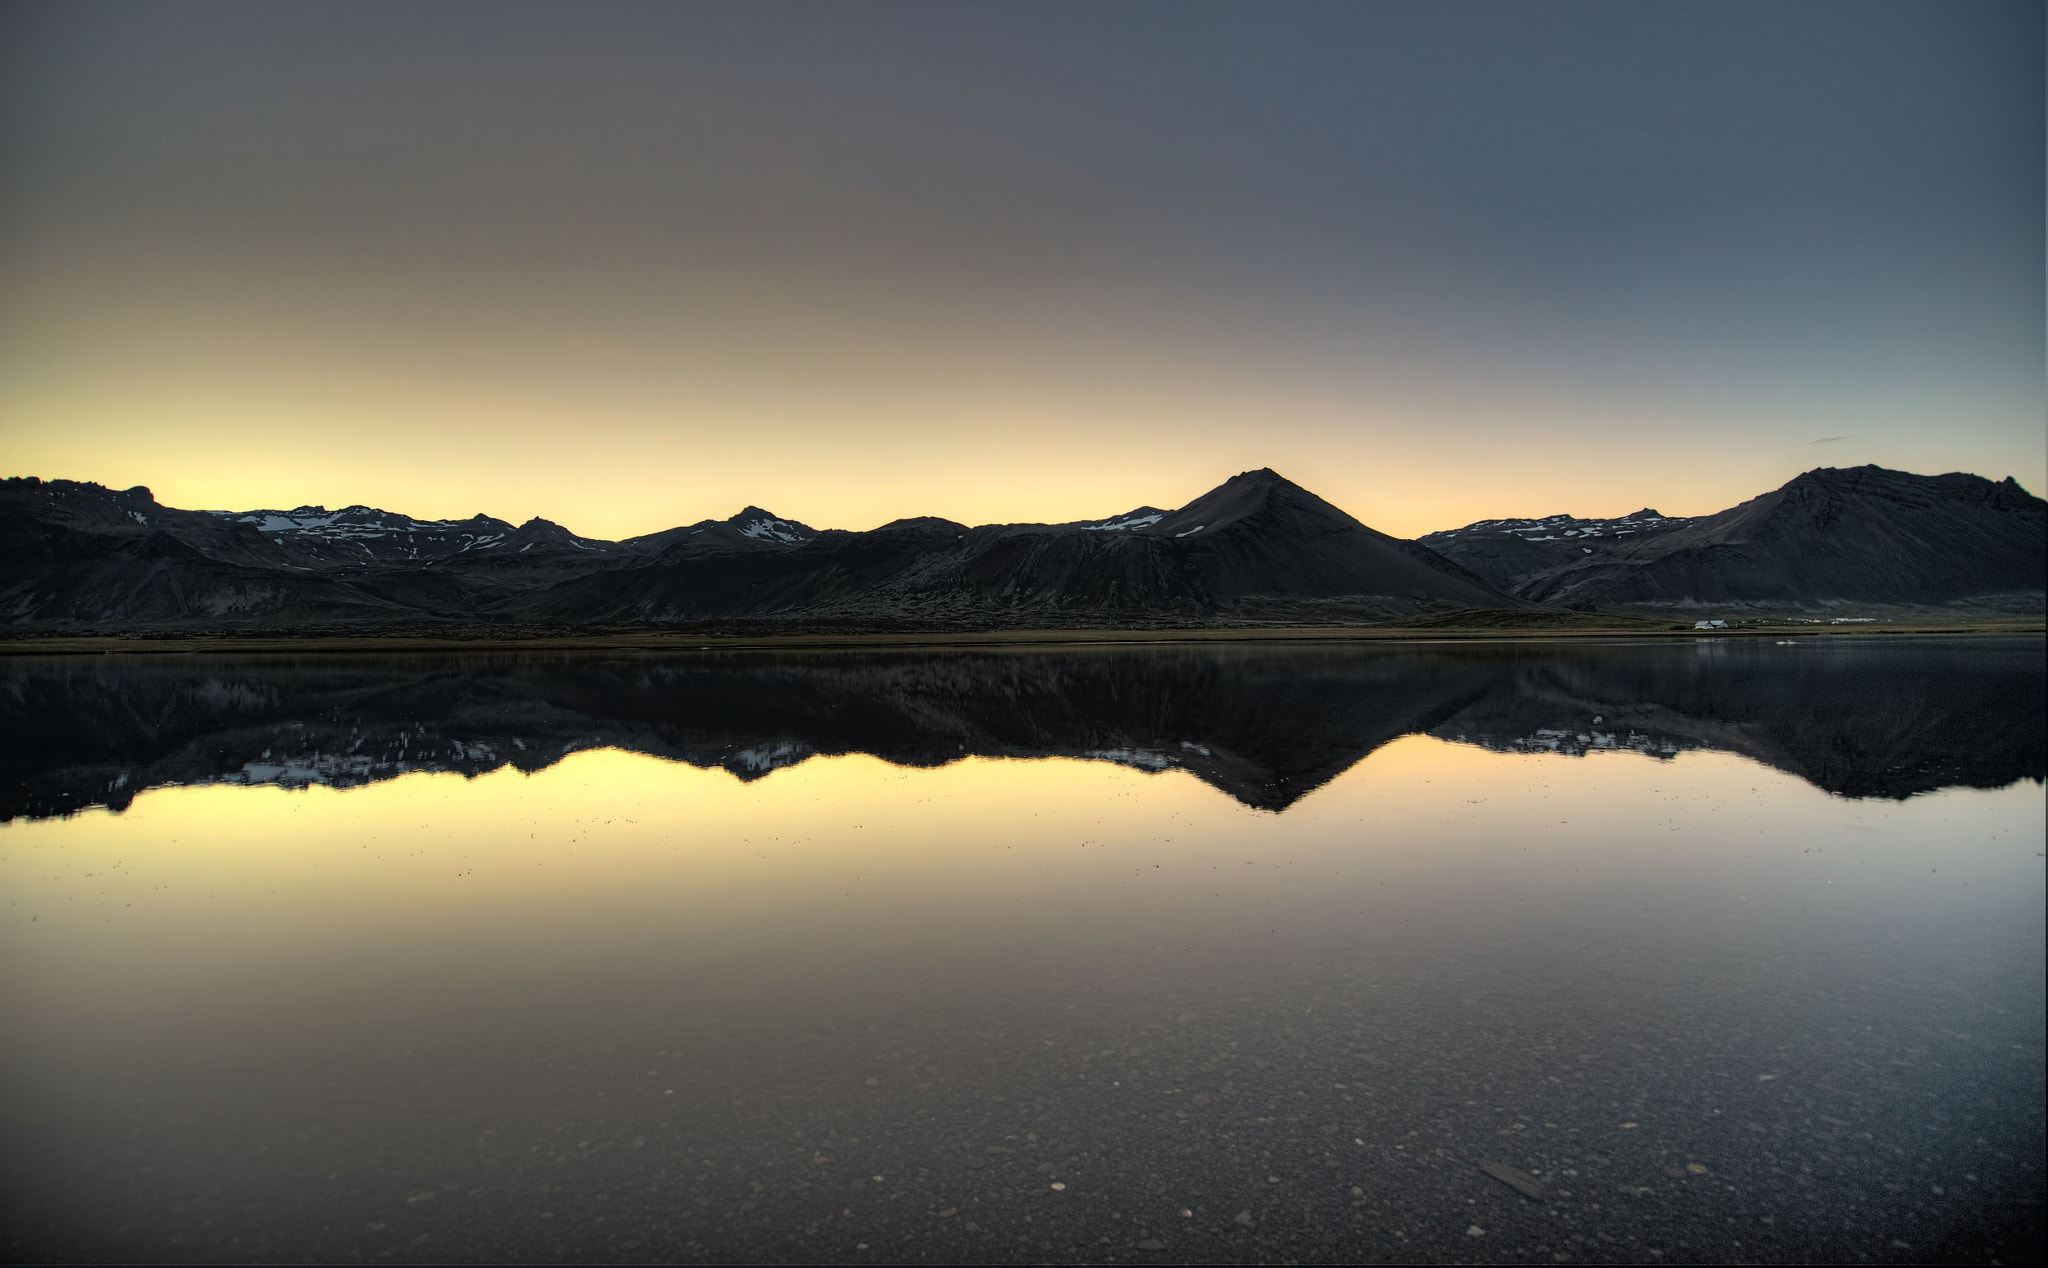 Photograph Reflection by Brian Collins on 500px